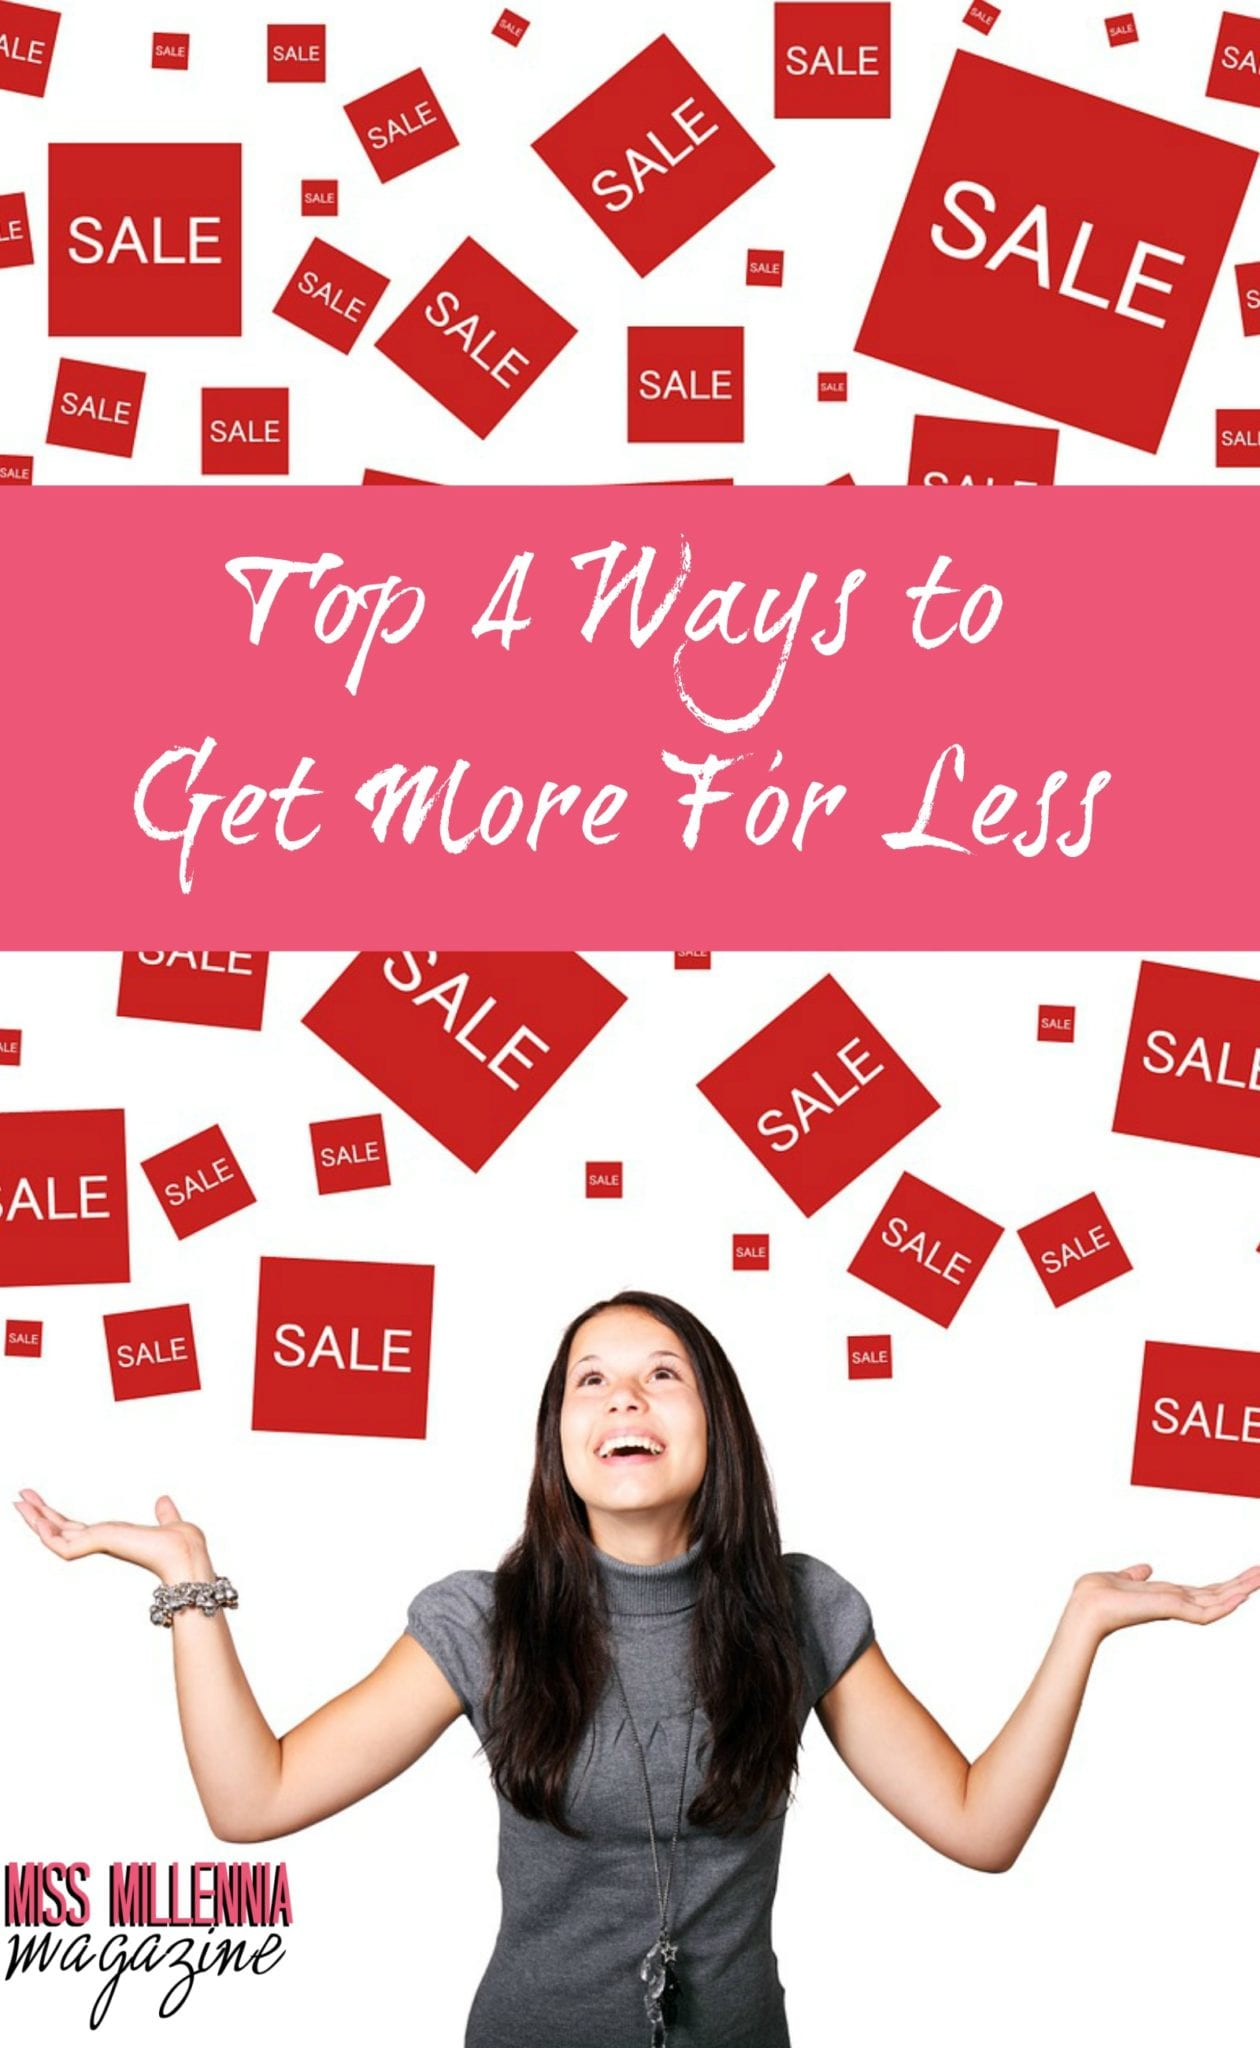 top-4-ways-to-get-more-for-less